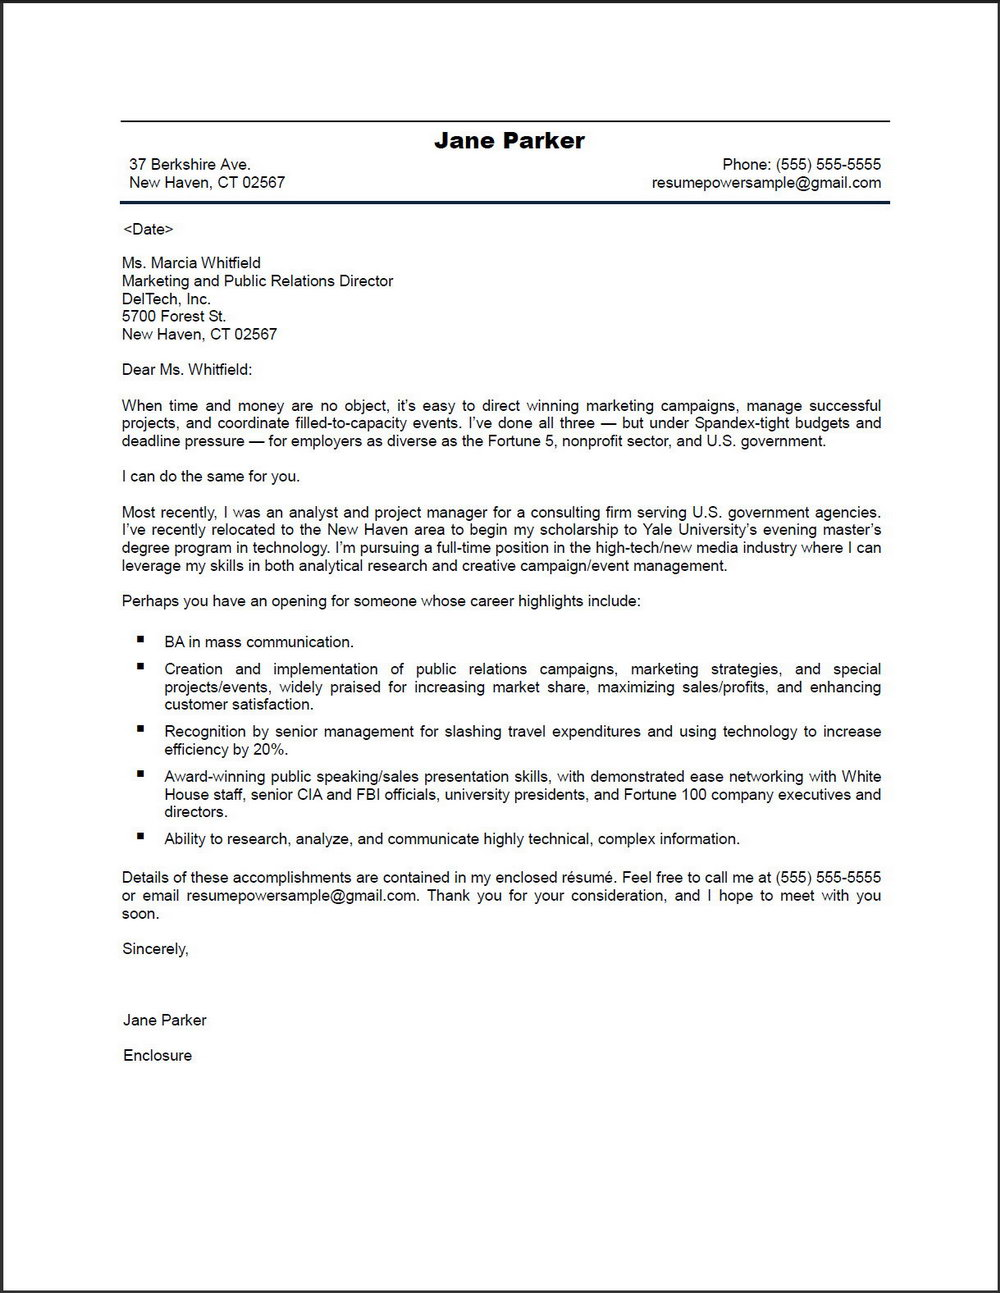 Sample Resumes And Cover Letters